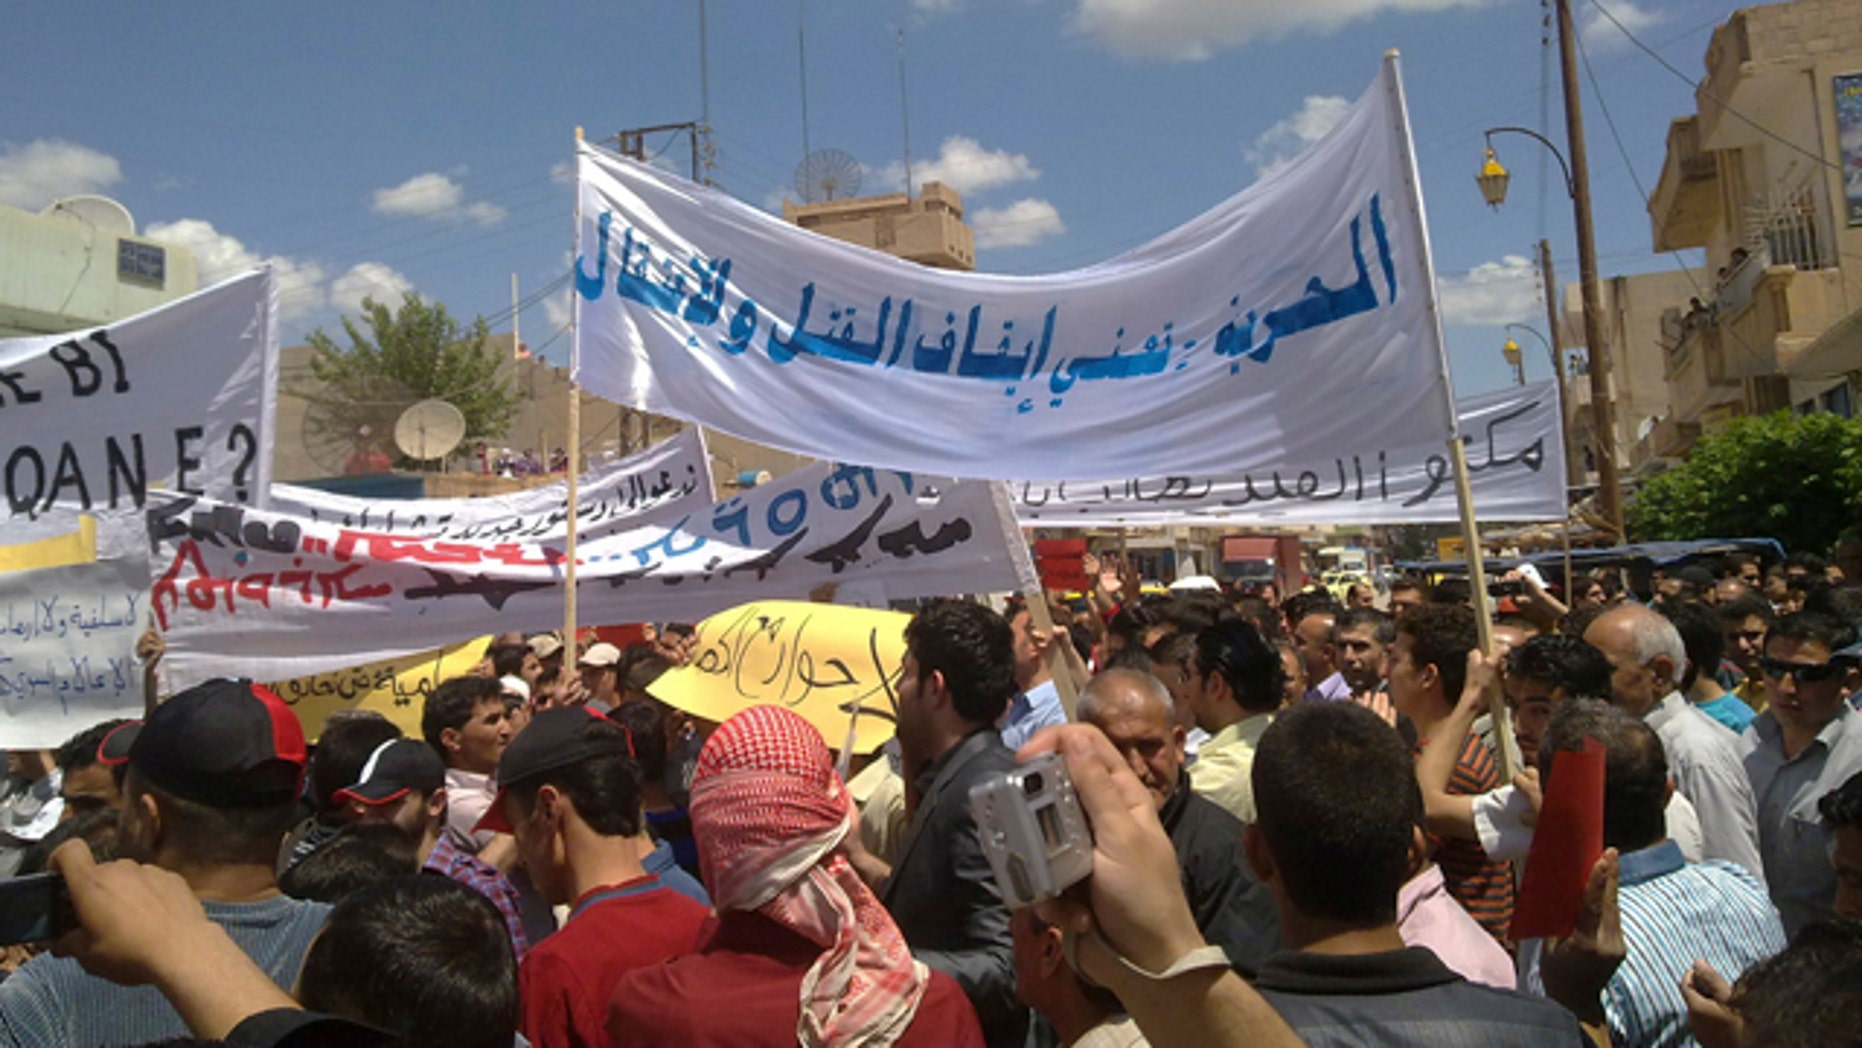 """May 13: In this citizen journalism image made on a mobile phone and acquired by the AP, Syrian anti-government protesters carry banners in Arabic that read: """"Freedom means to stop the killing and arrests,"""" during a rally in the northeastern city of Qamishli, Syria."""